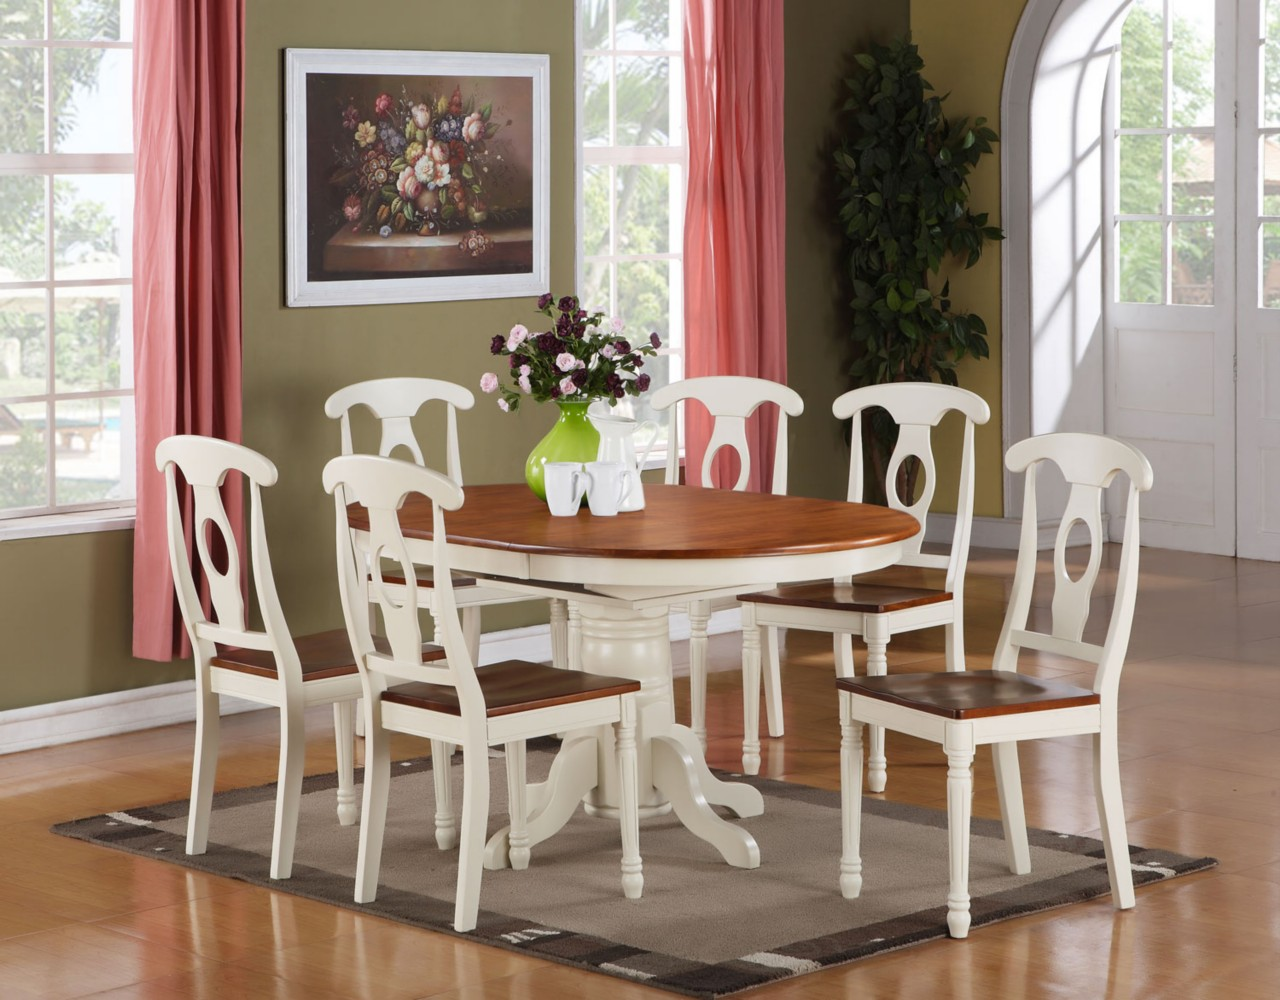 7 pc kenley oval dinette dining room set table with 6 chairs in buttermilk brown ebay - Pc dining room set ...